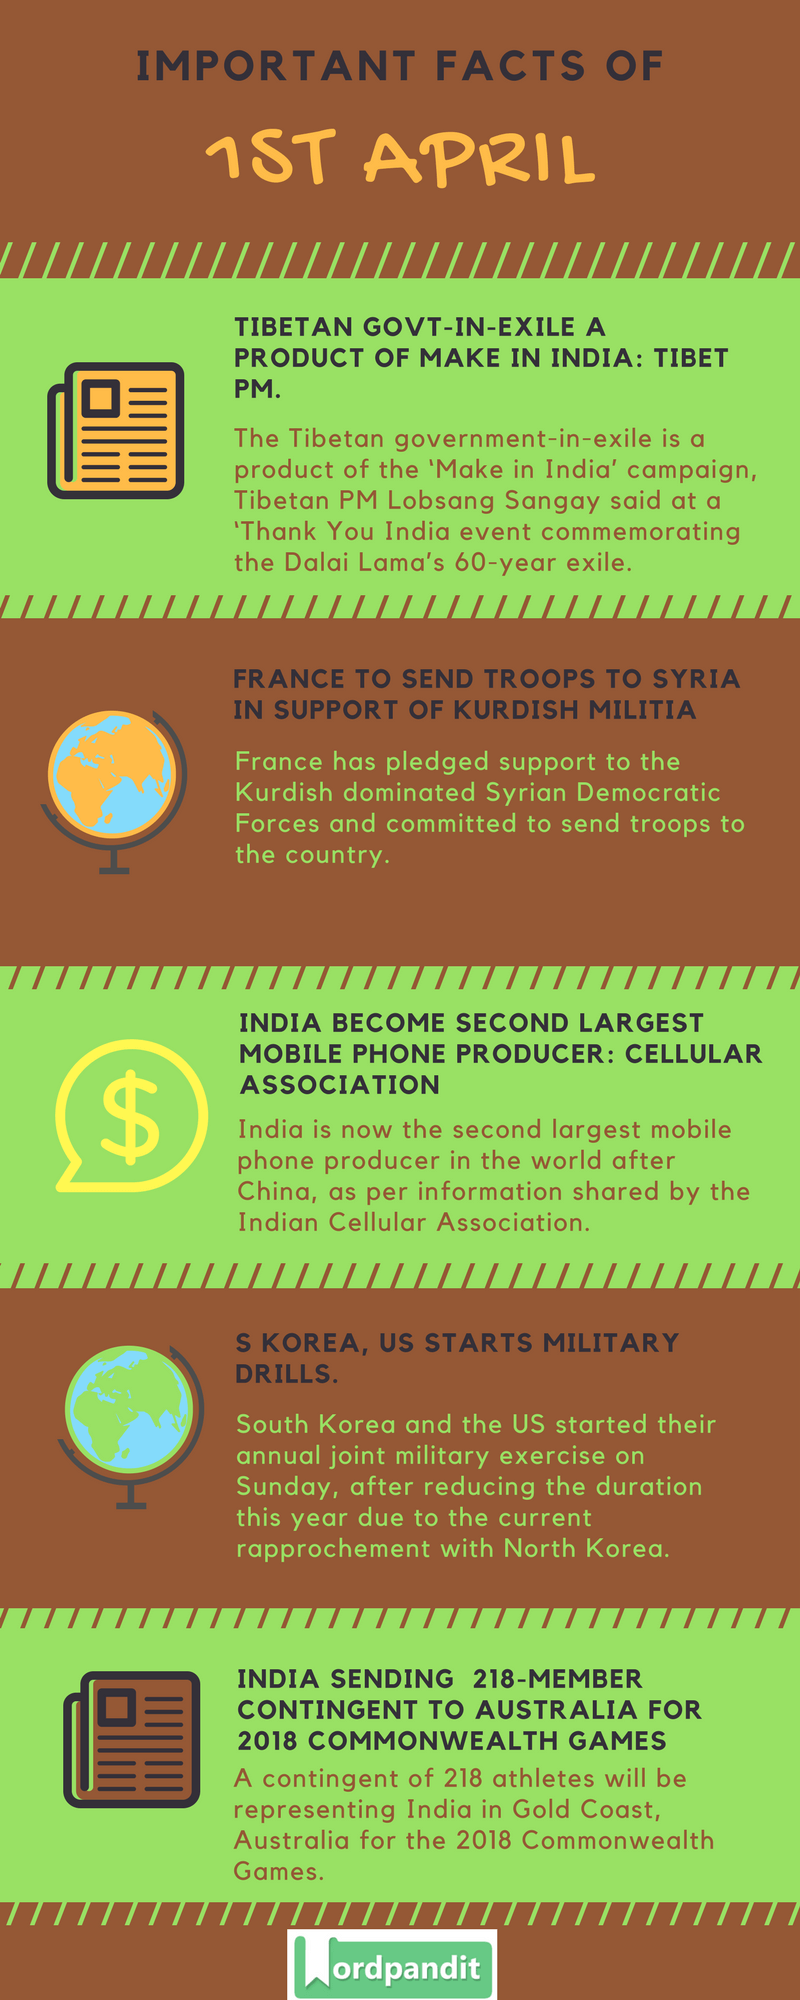 Daily Current Affairs 1 April 2018 Current Affairs Quiz April 1 2018 Current Affairs Infographic